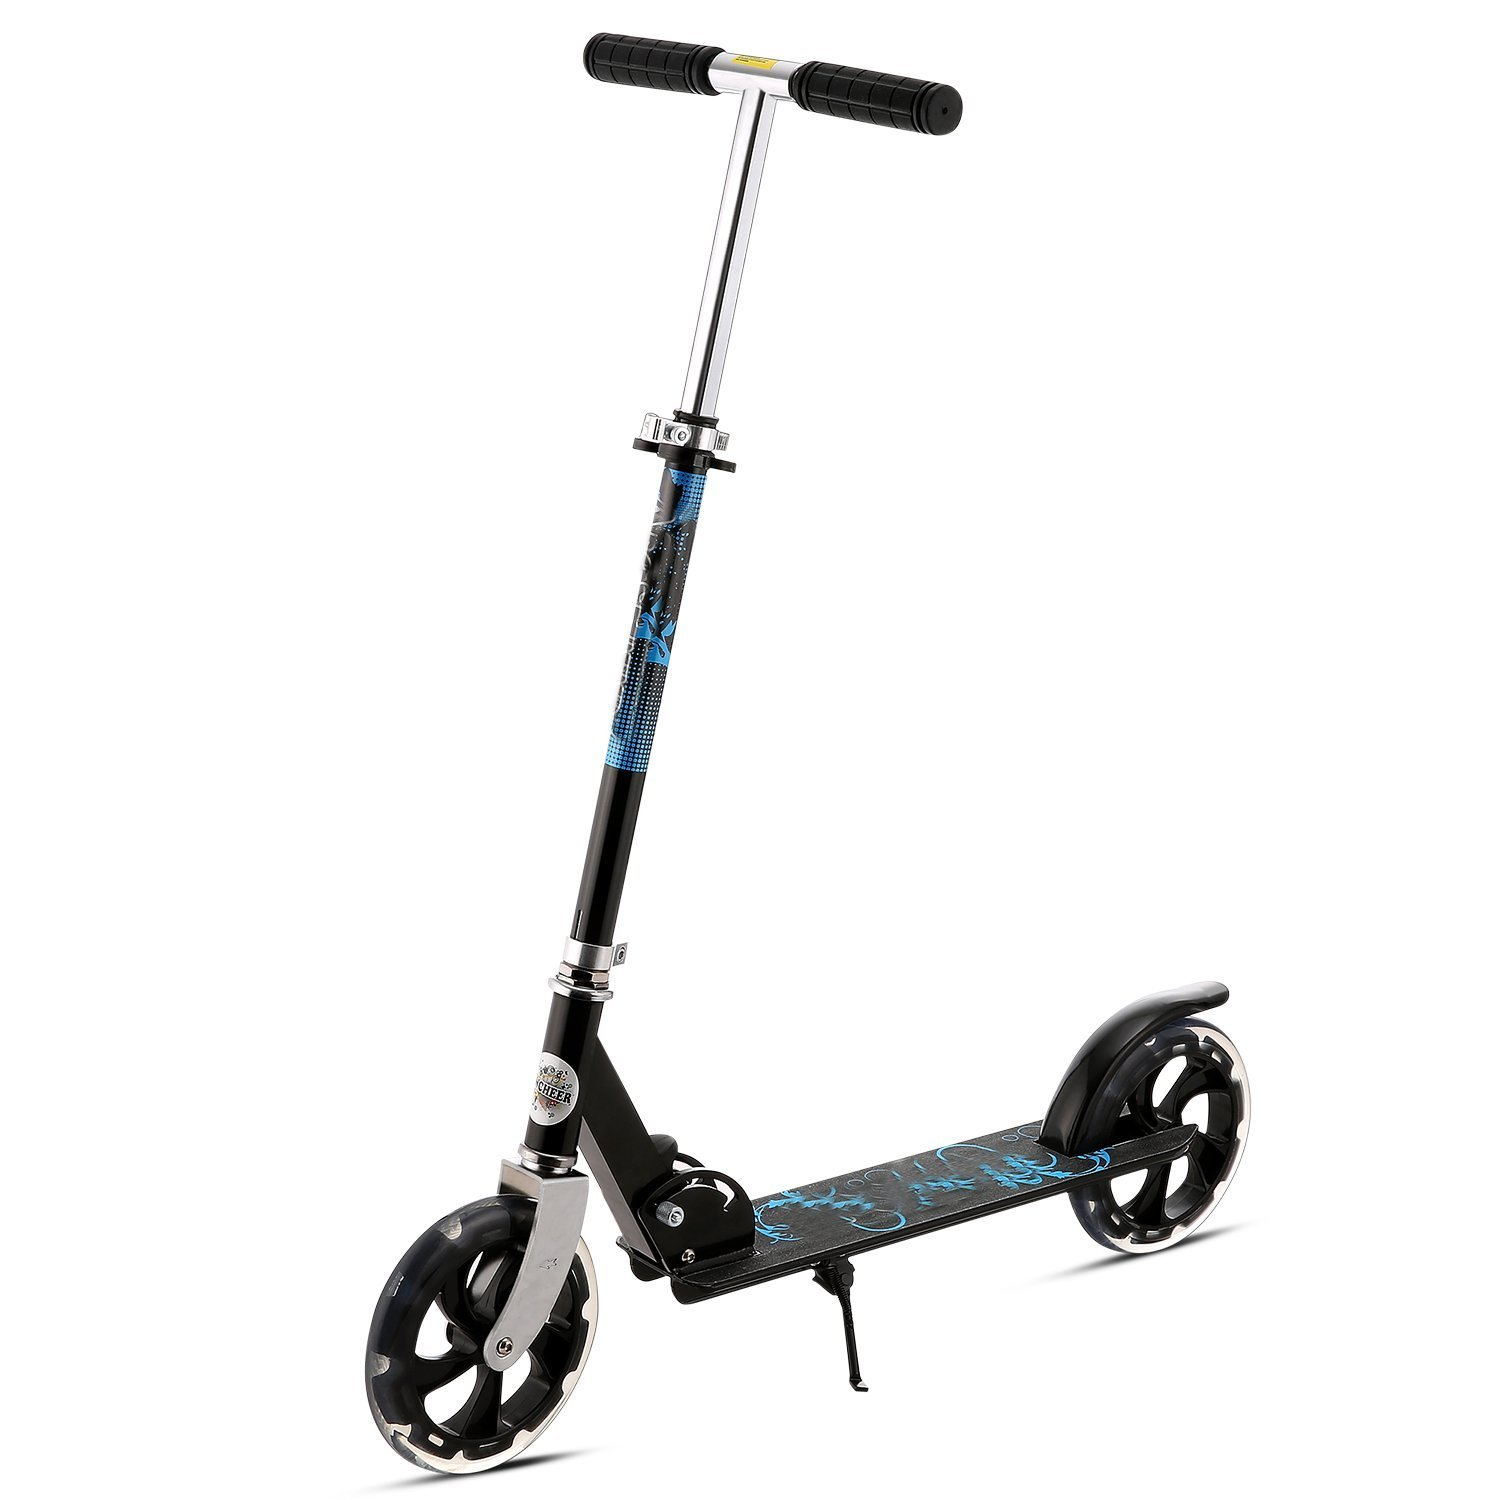 Height Adjustable Folding Kick Scooter-2 Big Wheel Kick Scooter Board for Adult / Teen / Boys / Girls Perfect Unique Present Gift